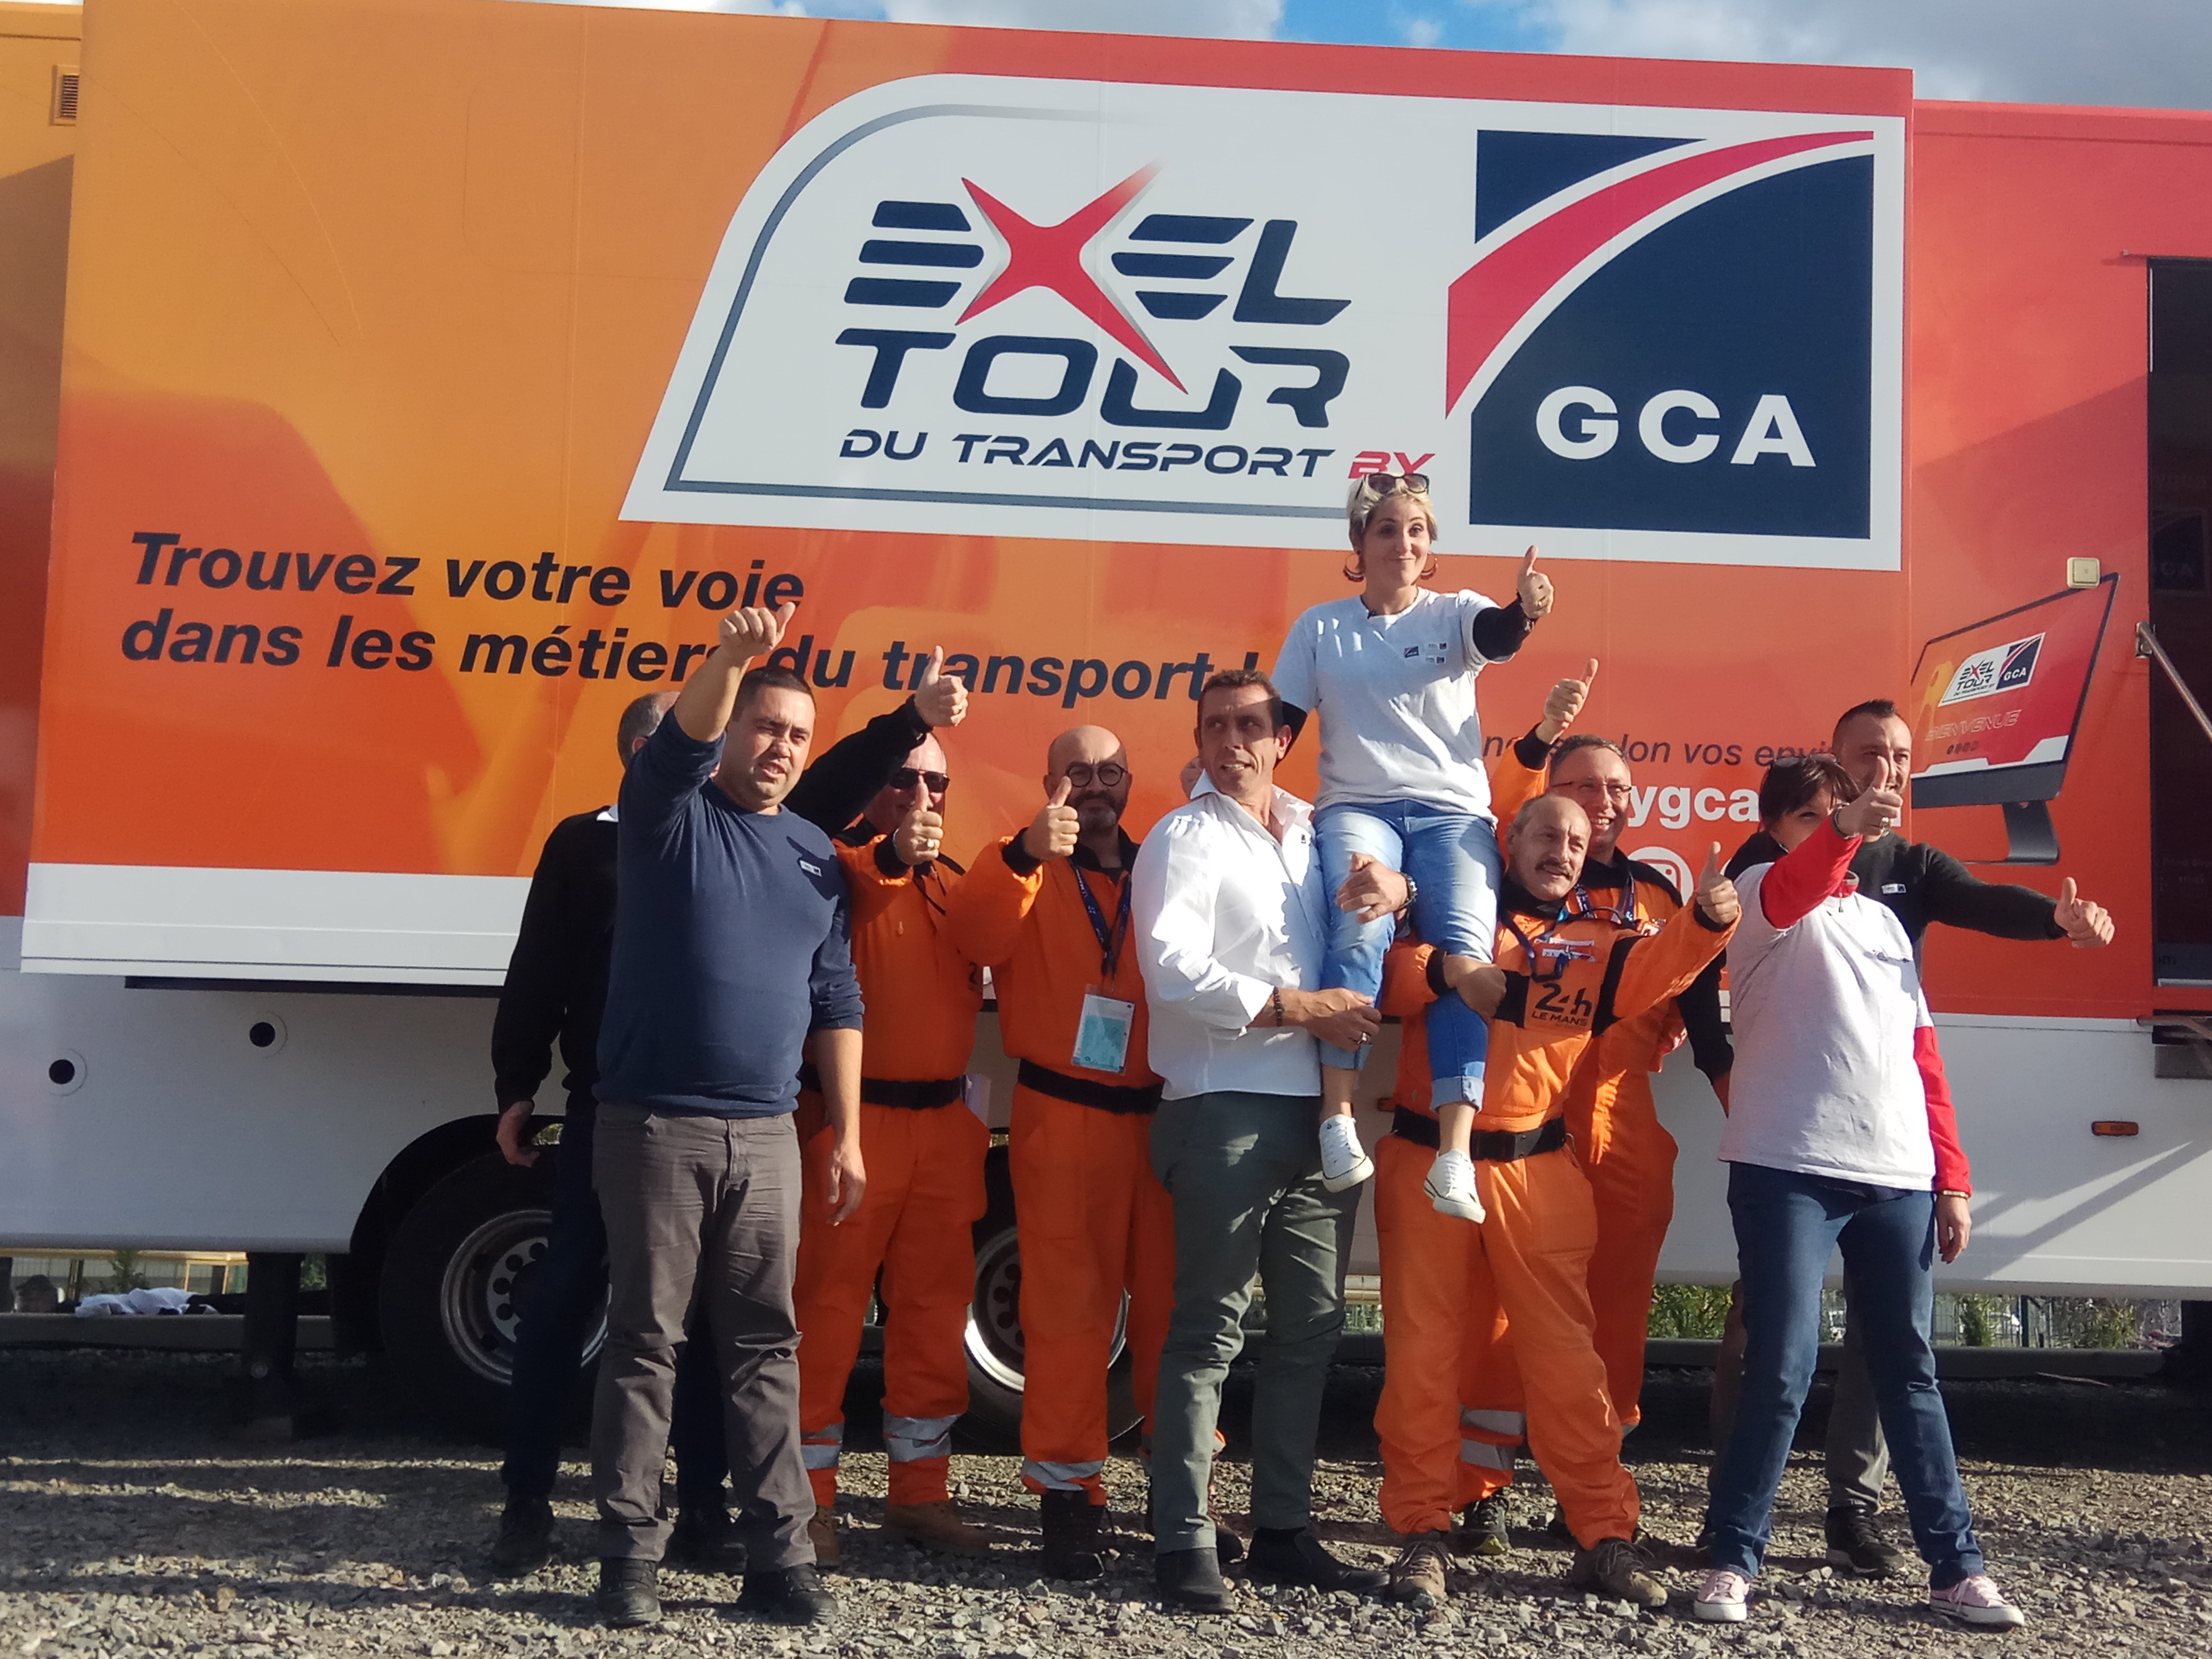 Lancement Exel Tour by GCA